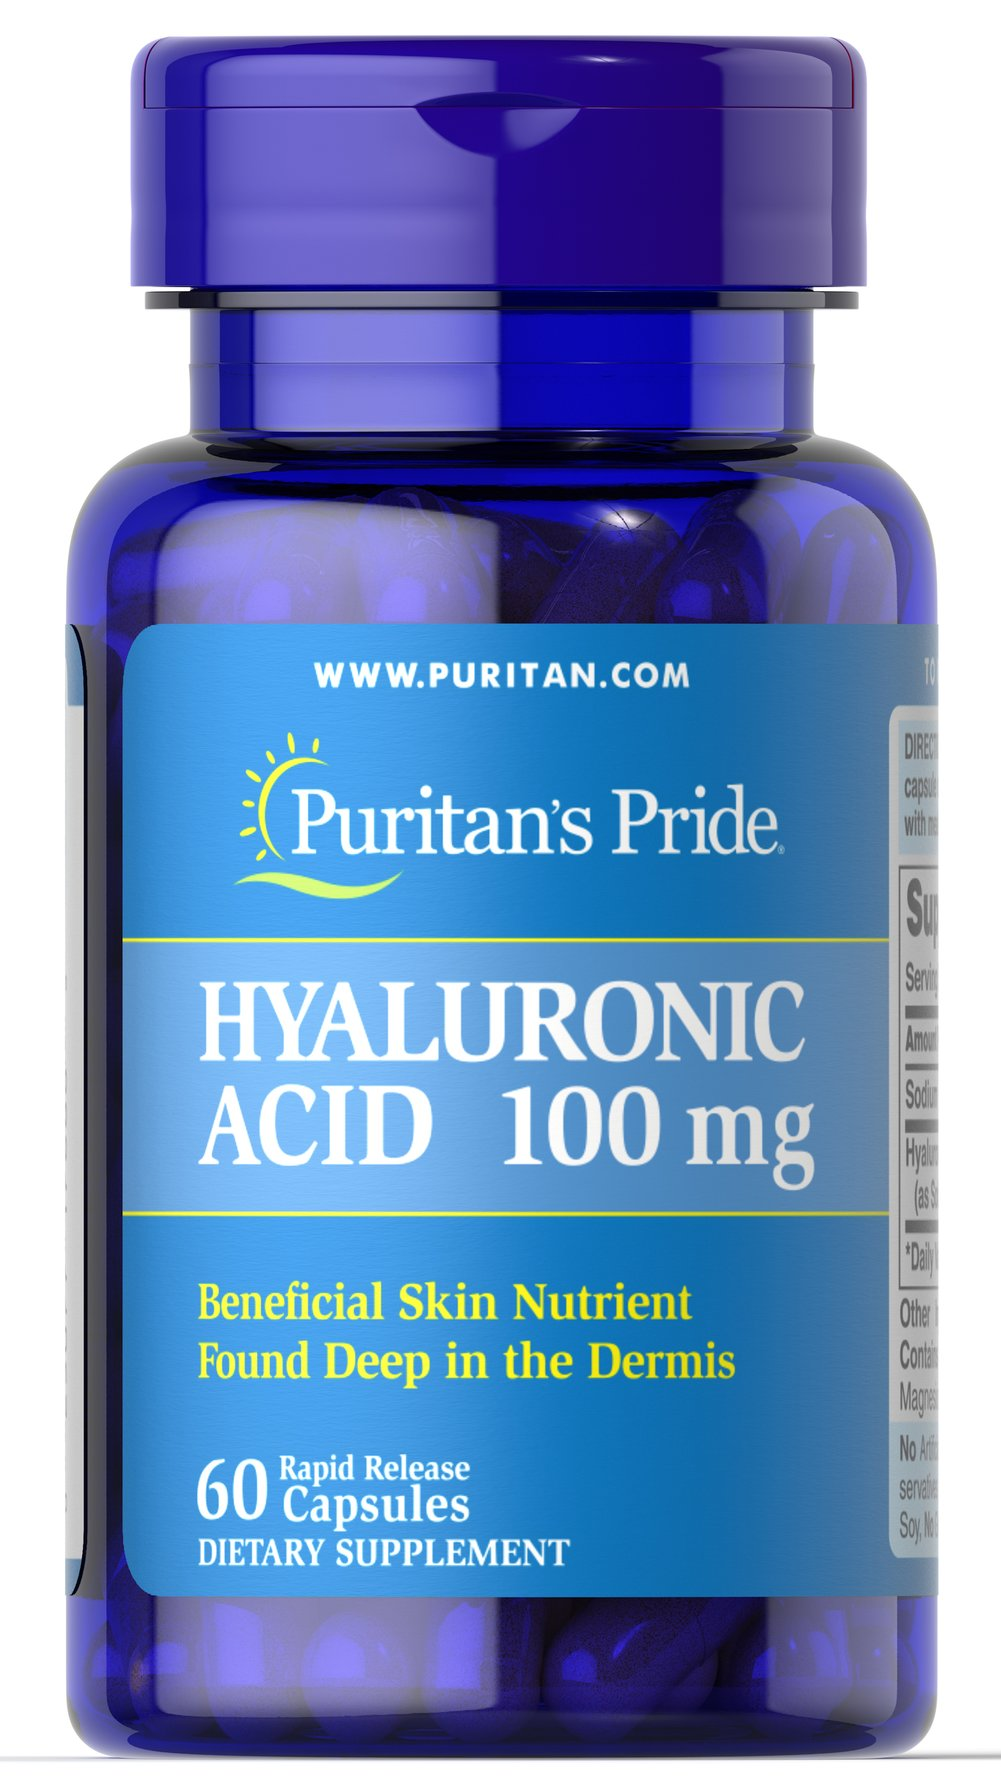 Hyaluronic Acid 100 mg <p>Helps lubricate joints**</p><p>Hyaluronic Acid is a polysaccharide found in almost all adult connective tissue, including joints, ligaments, tendons and skin.** Just one Hyaluronic Acid capsule a day can help maintain the fluid between your joints, providing the cushioning and lubrication necessary for easy movement.**</p> 60 Capsules 100 mg $42.99